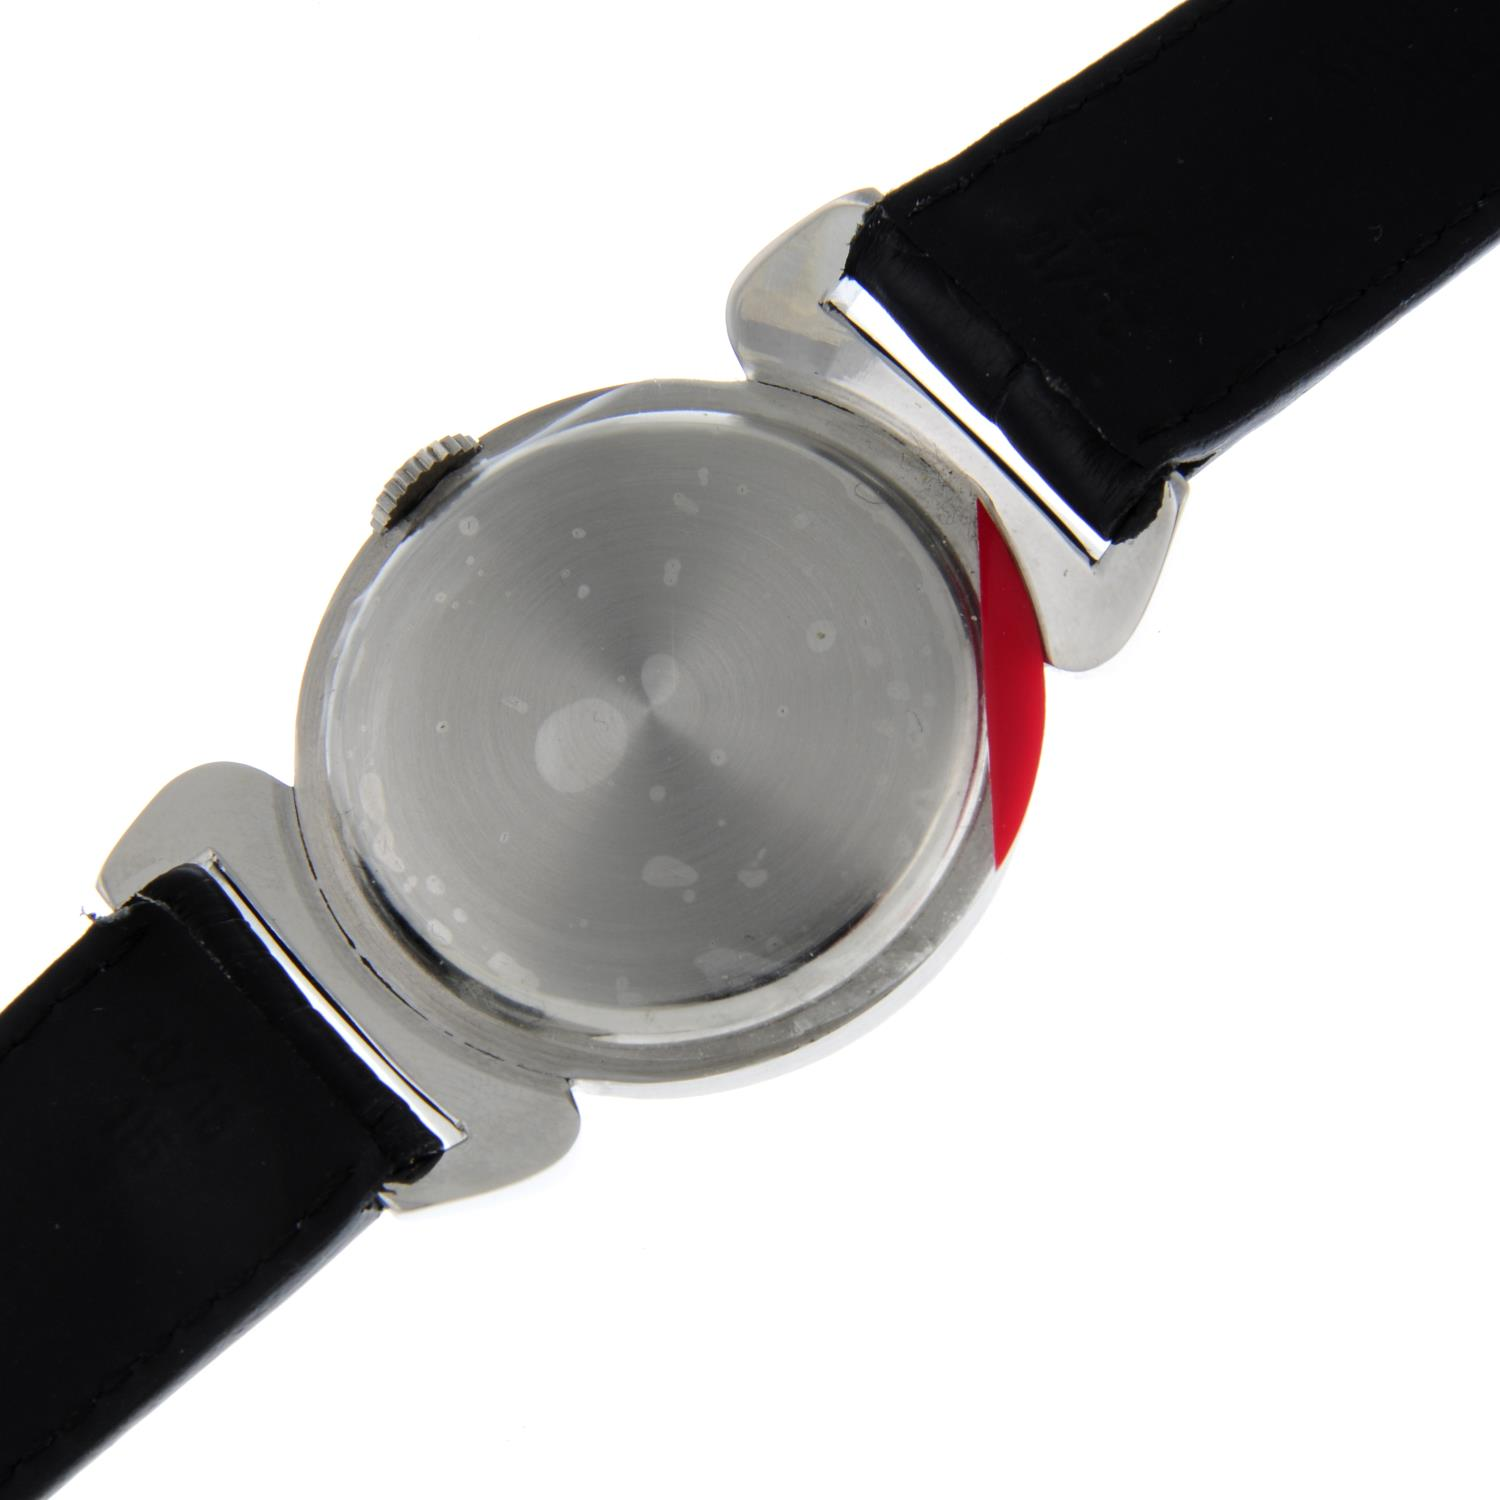 OMEGA - a Scarab wrist watch. - Image 5 of 5